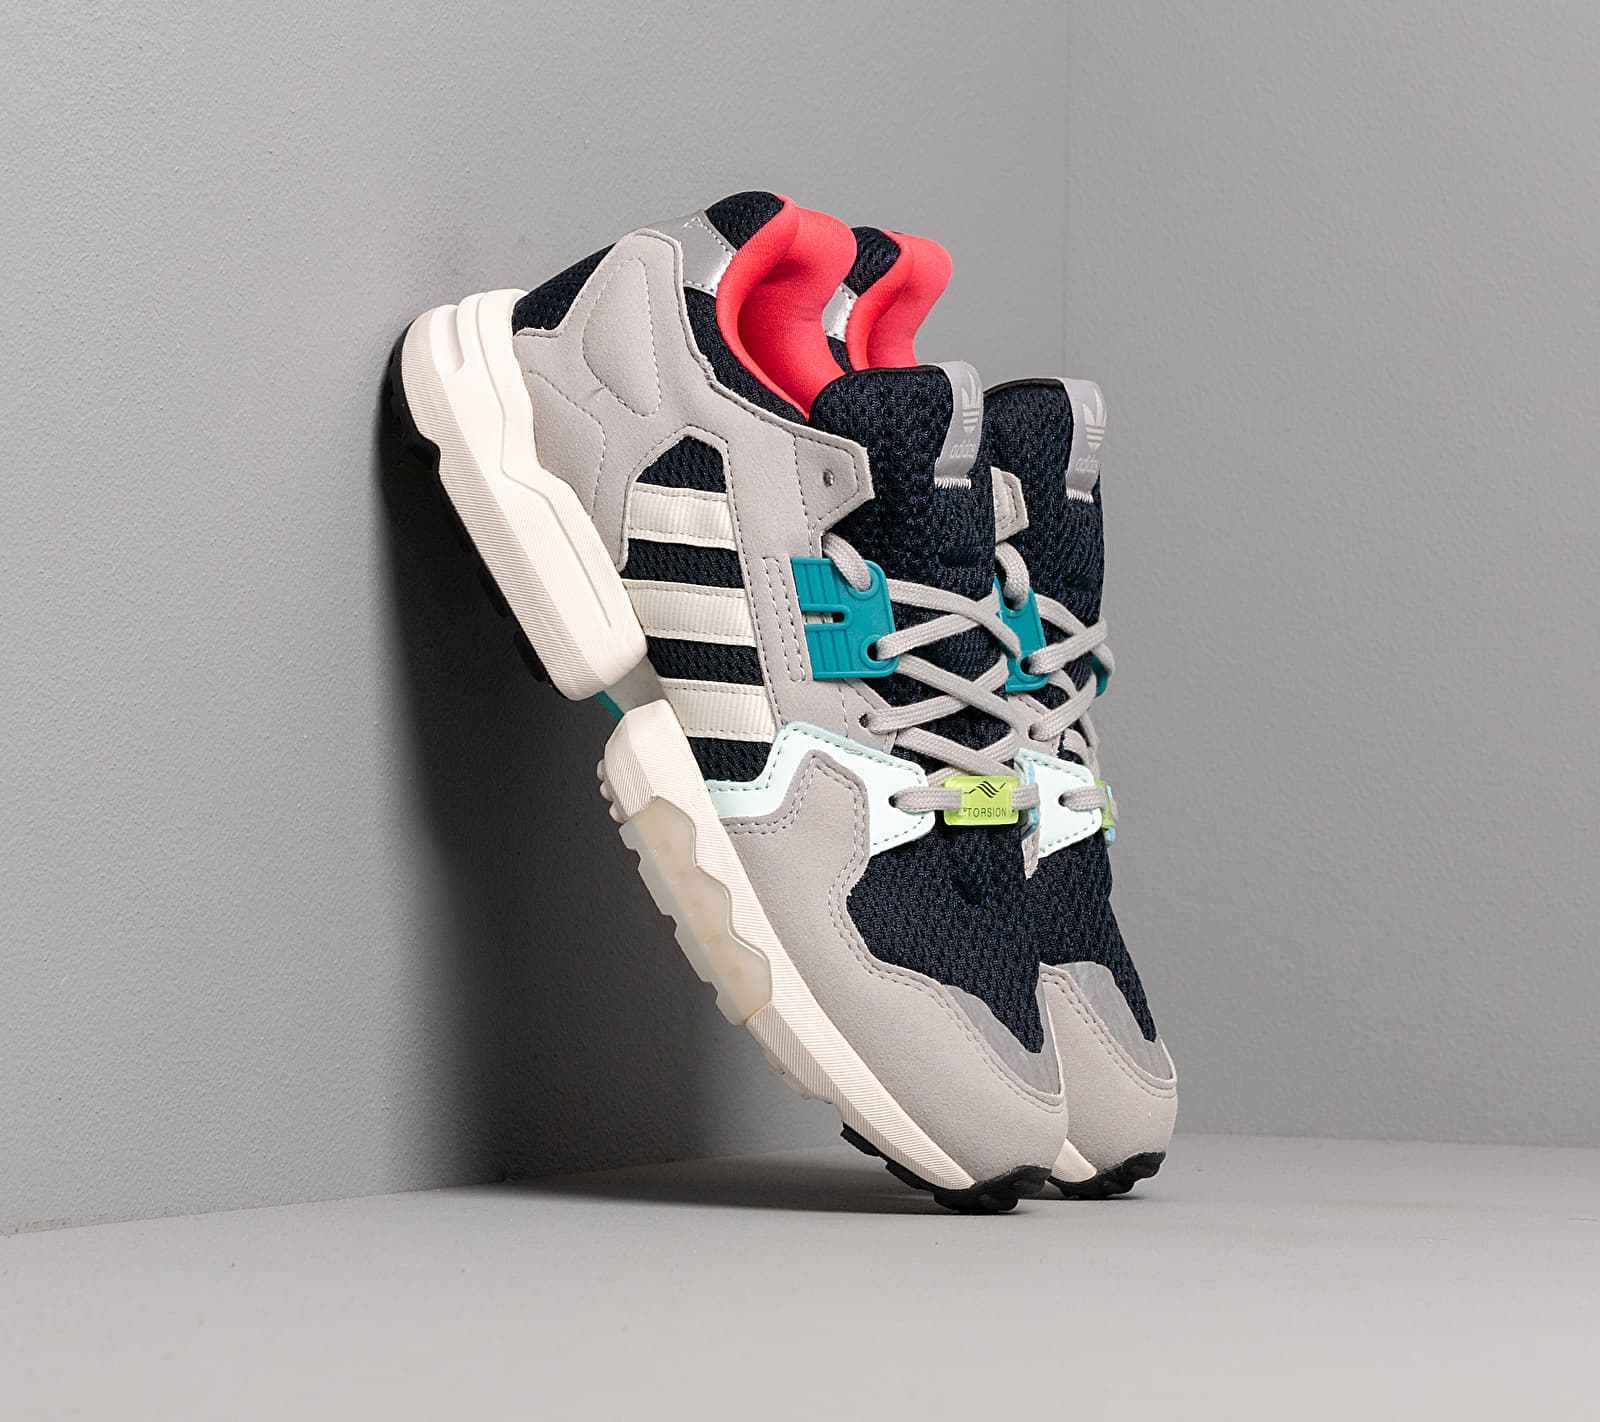 adidas Zx Torsion W Collegiate Navy/ Off White/ Grey Two, Blue